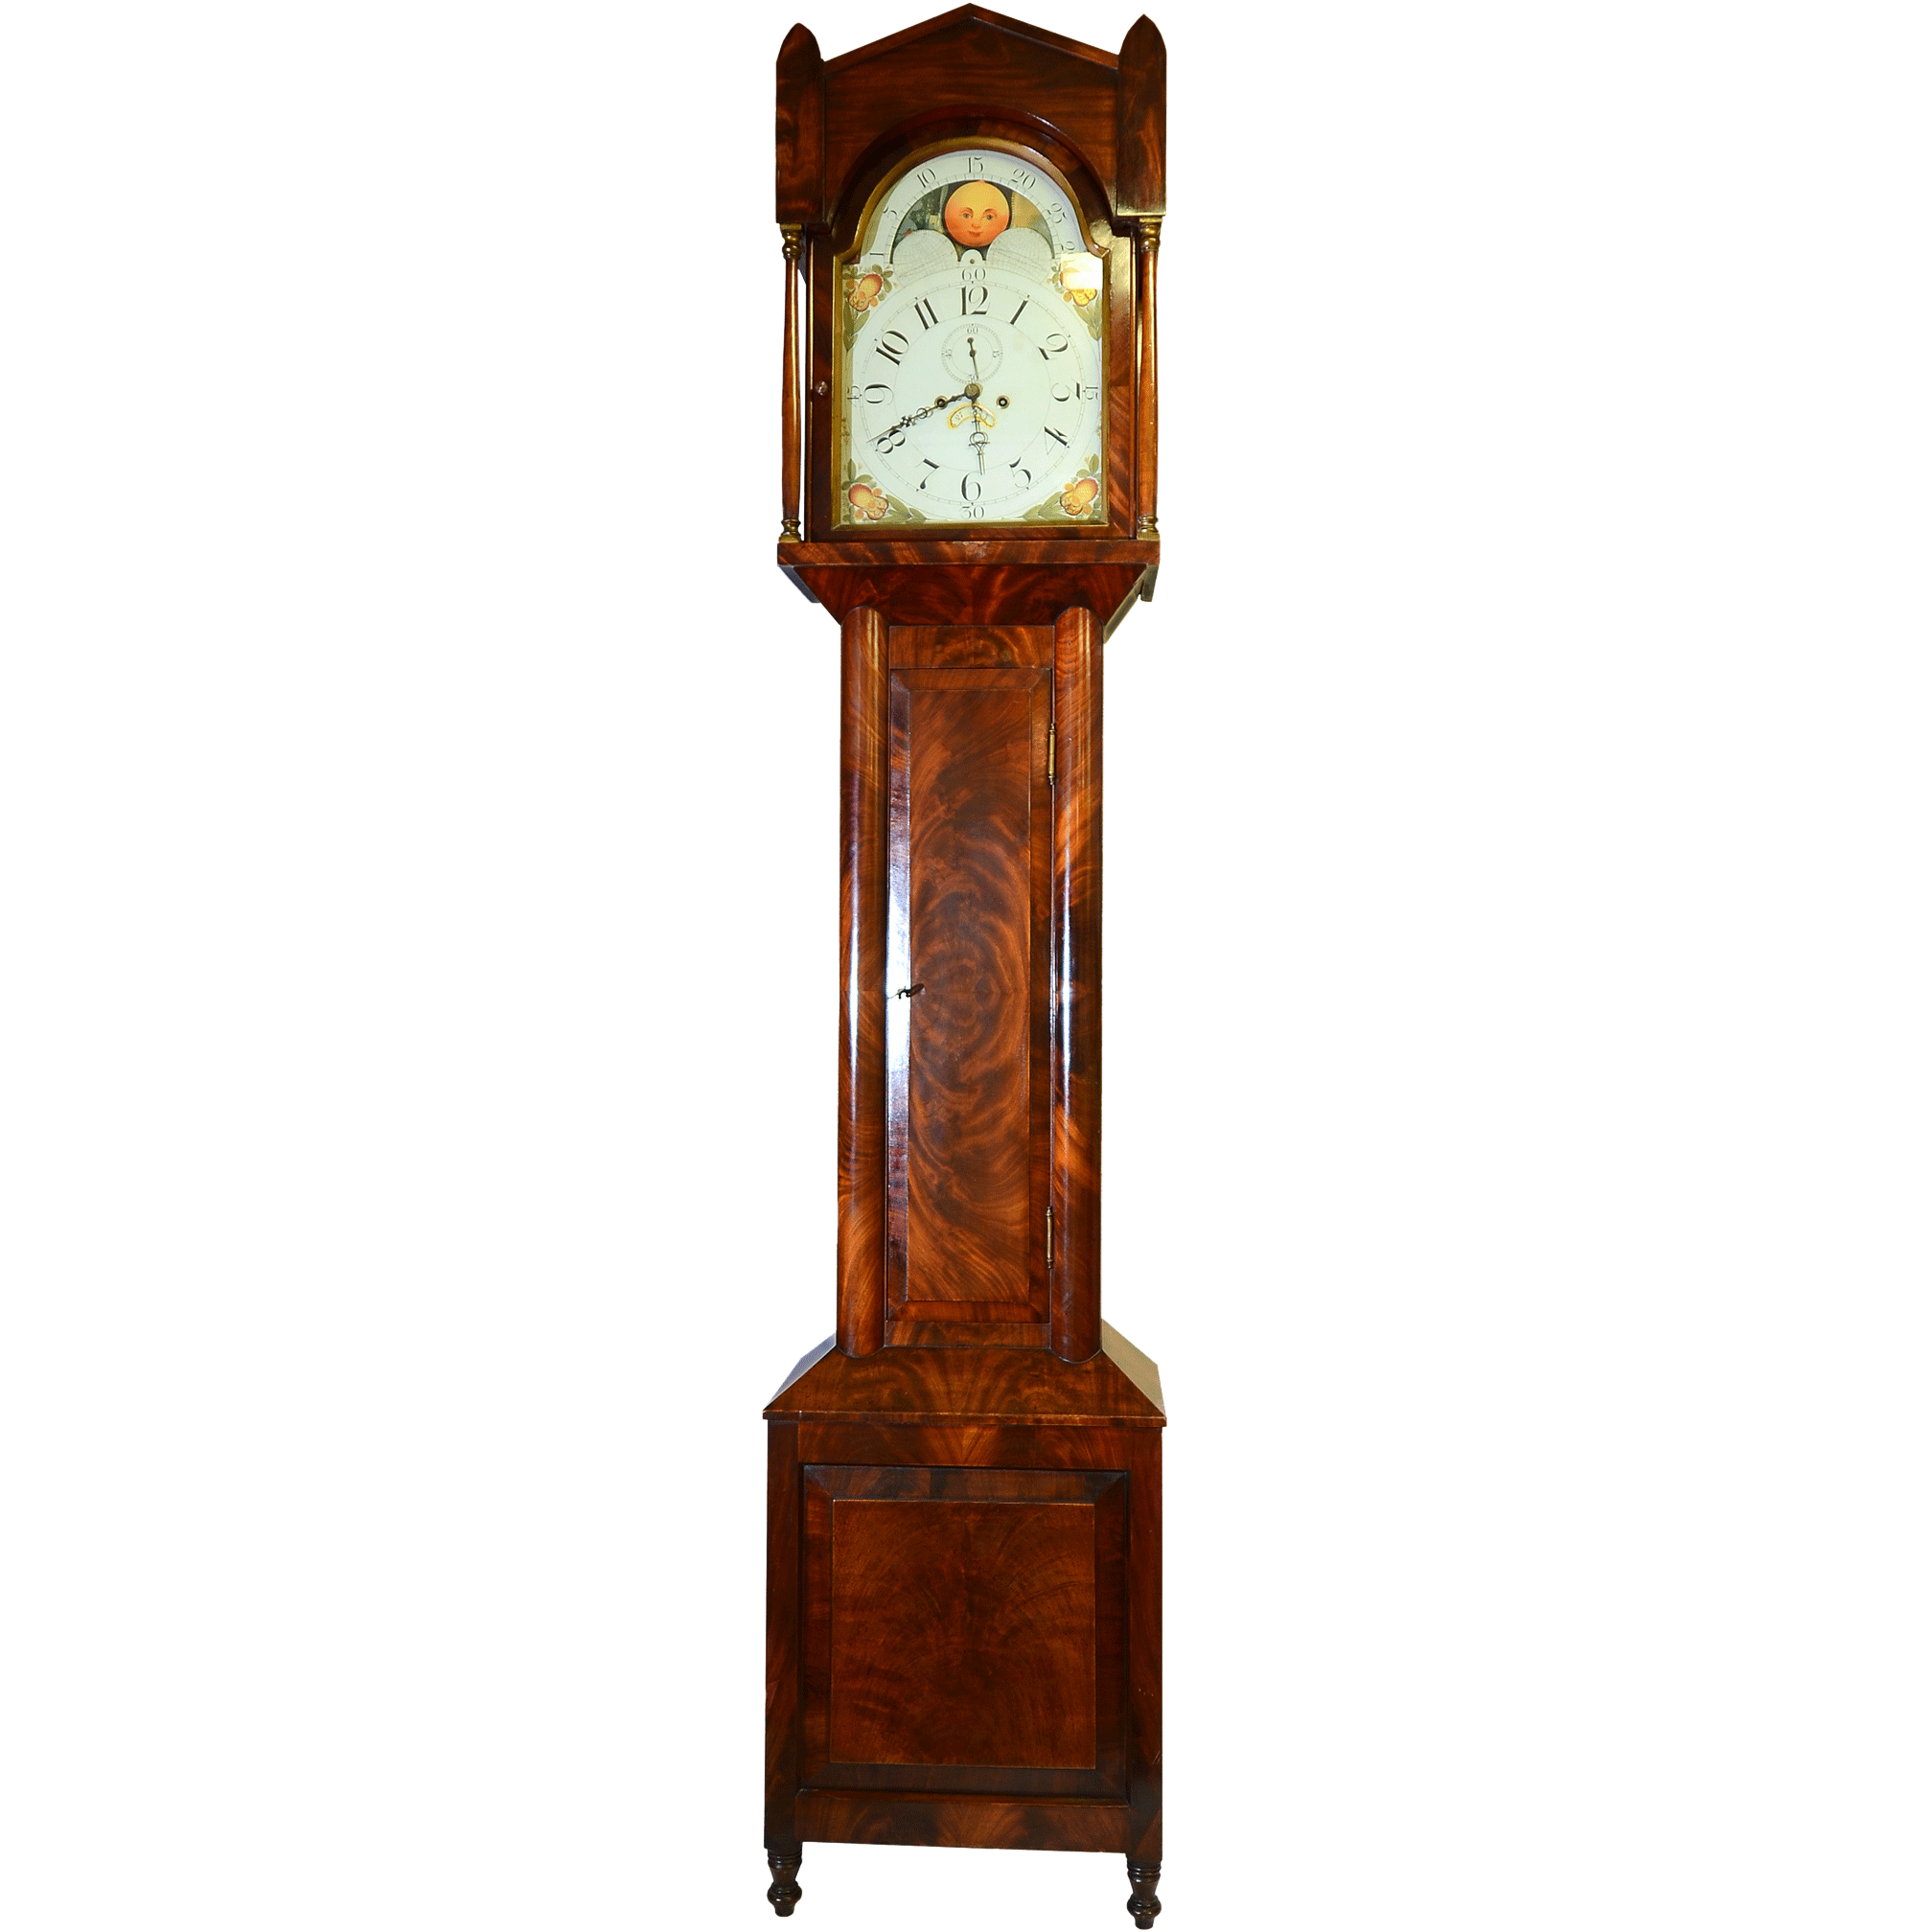 American Tall Case Clock in Flame Mahogany